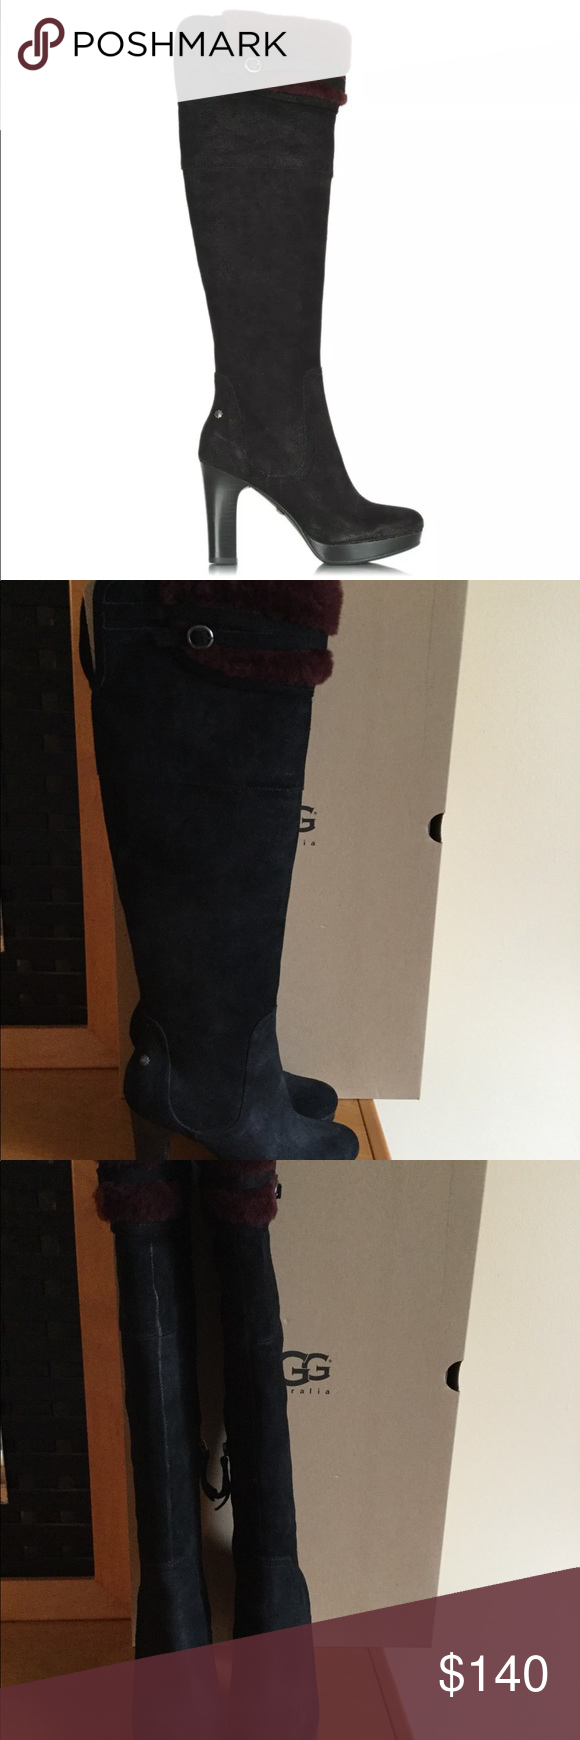 9c43e4523b2 UGG Ophira black suede leather over the knee boots Very good ...